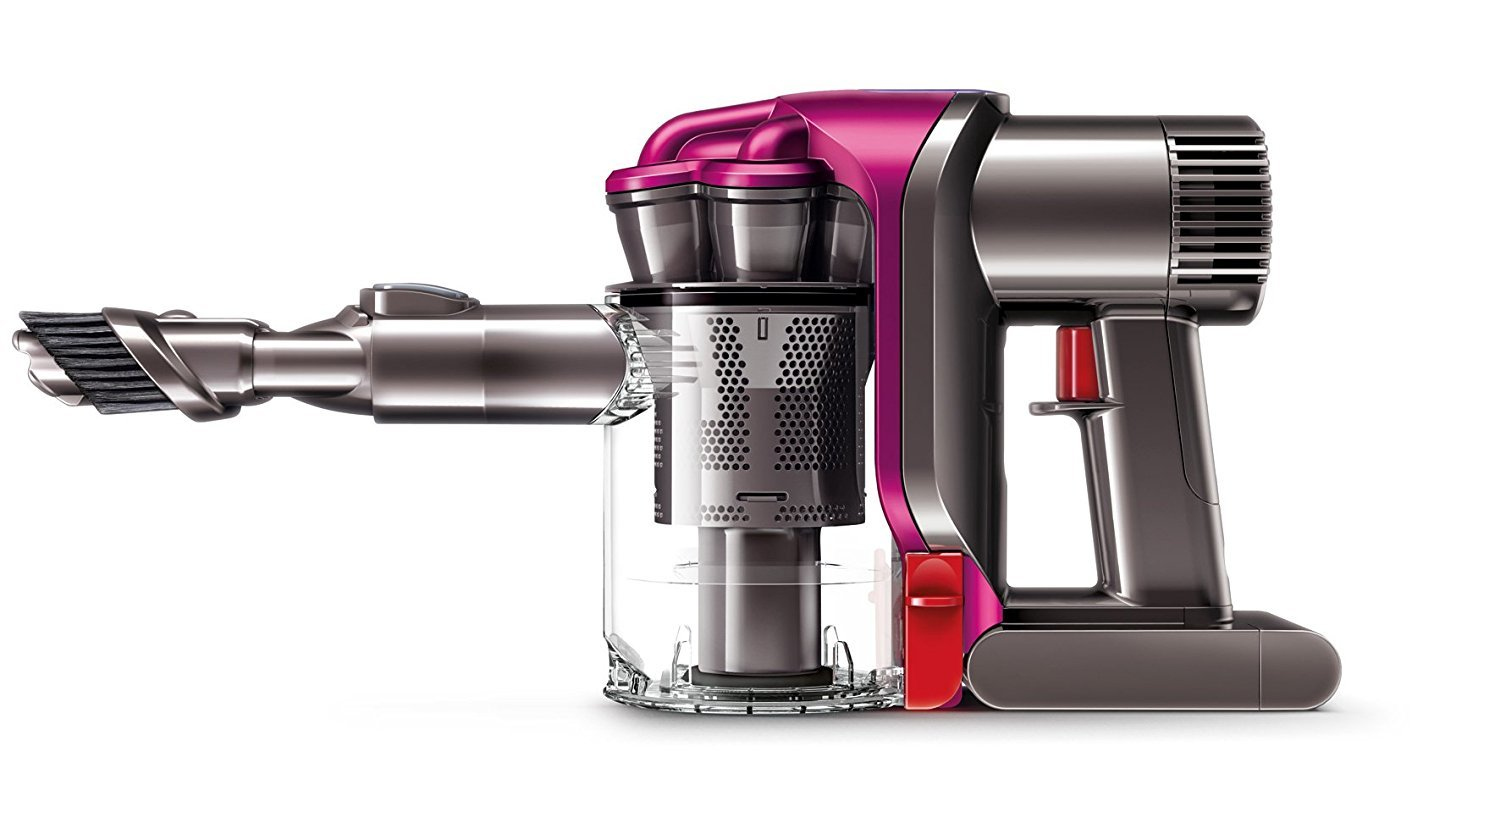 Handheld dyson reviews dyson vacuum cleaners reviews